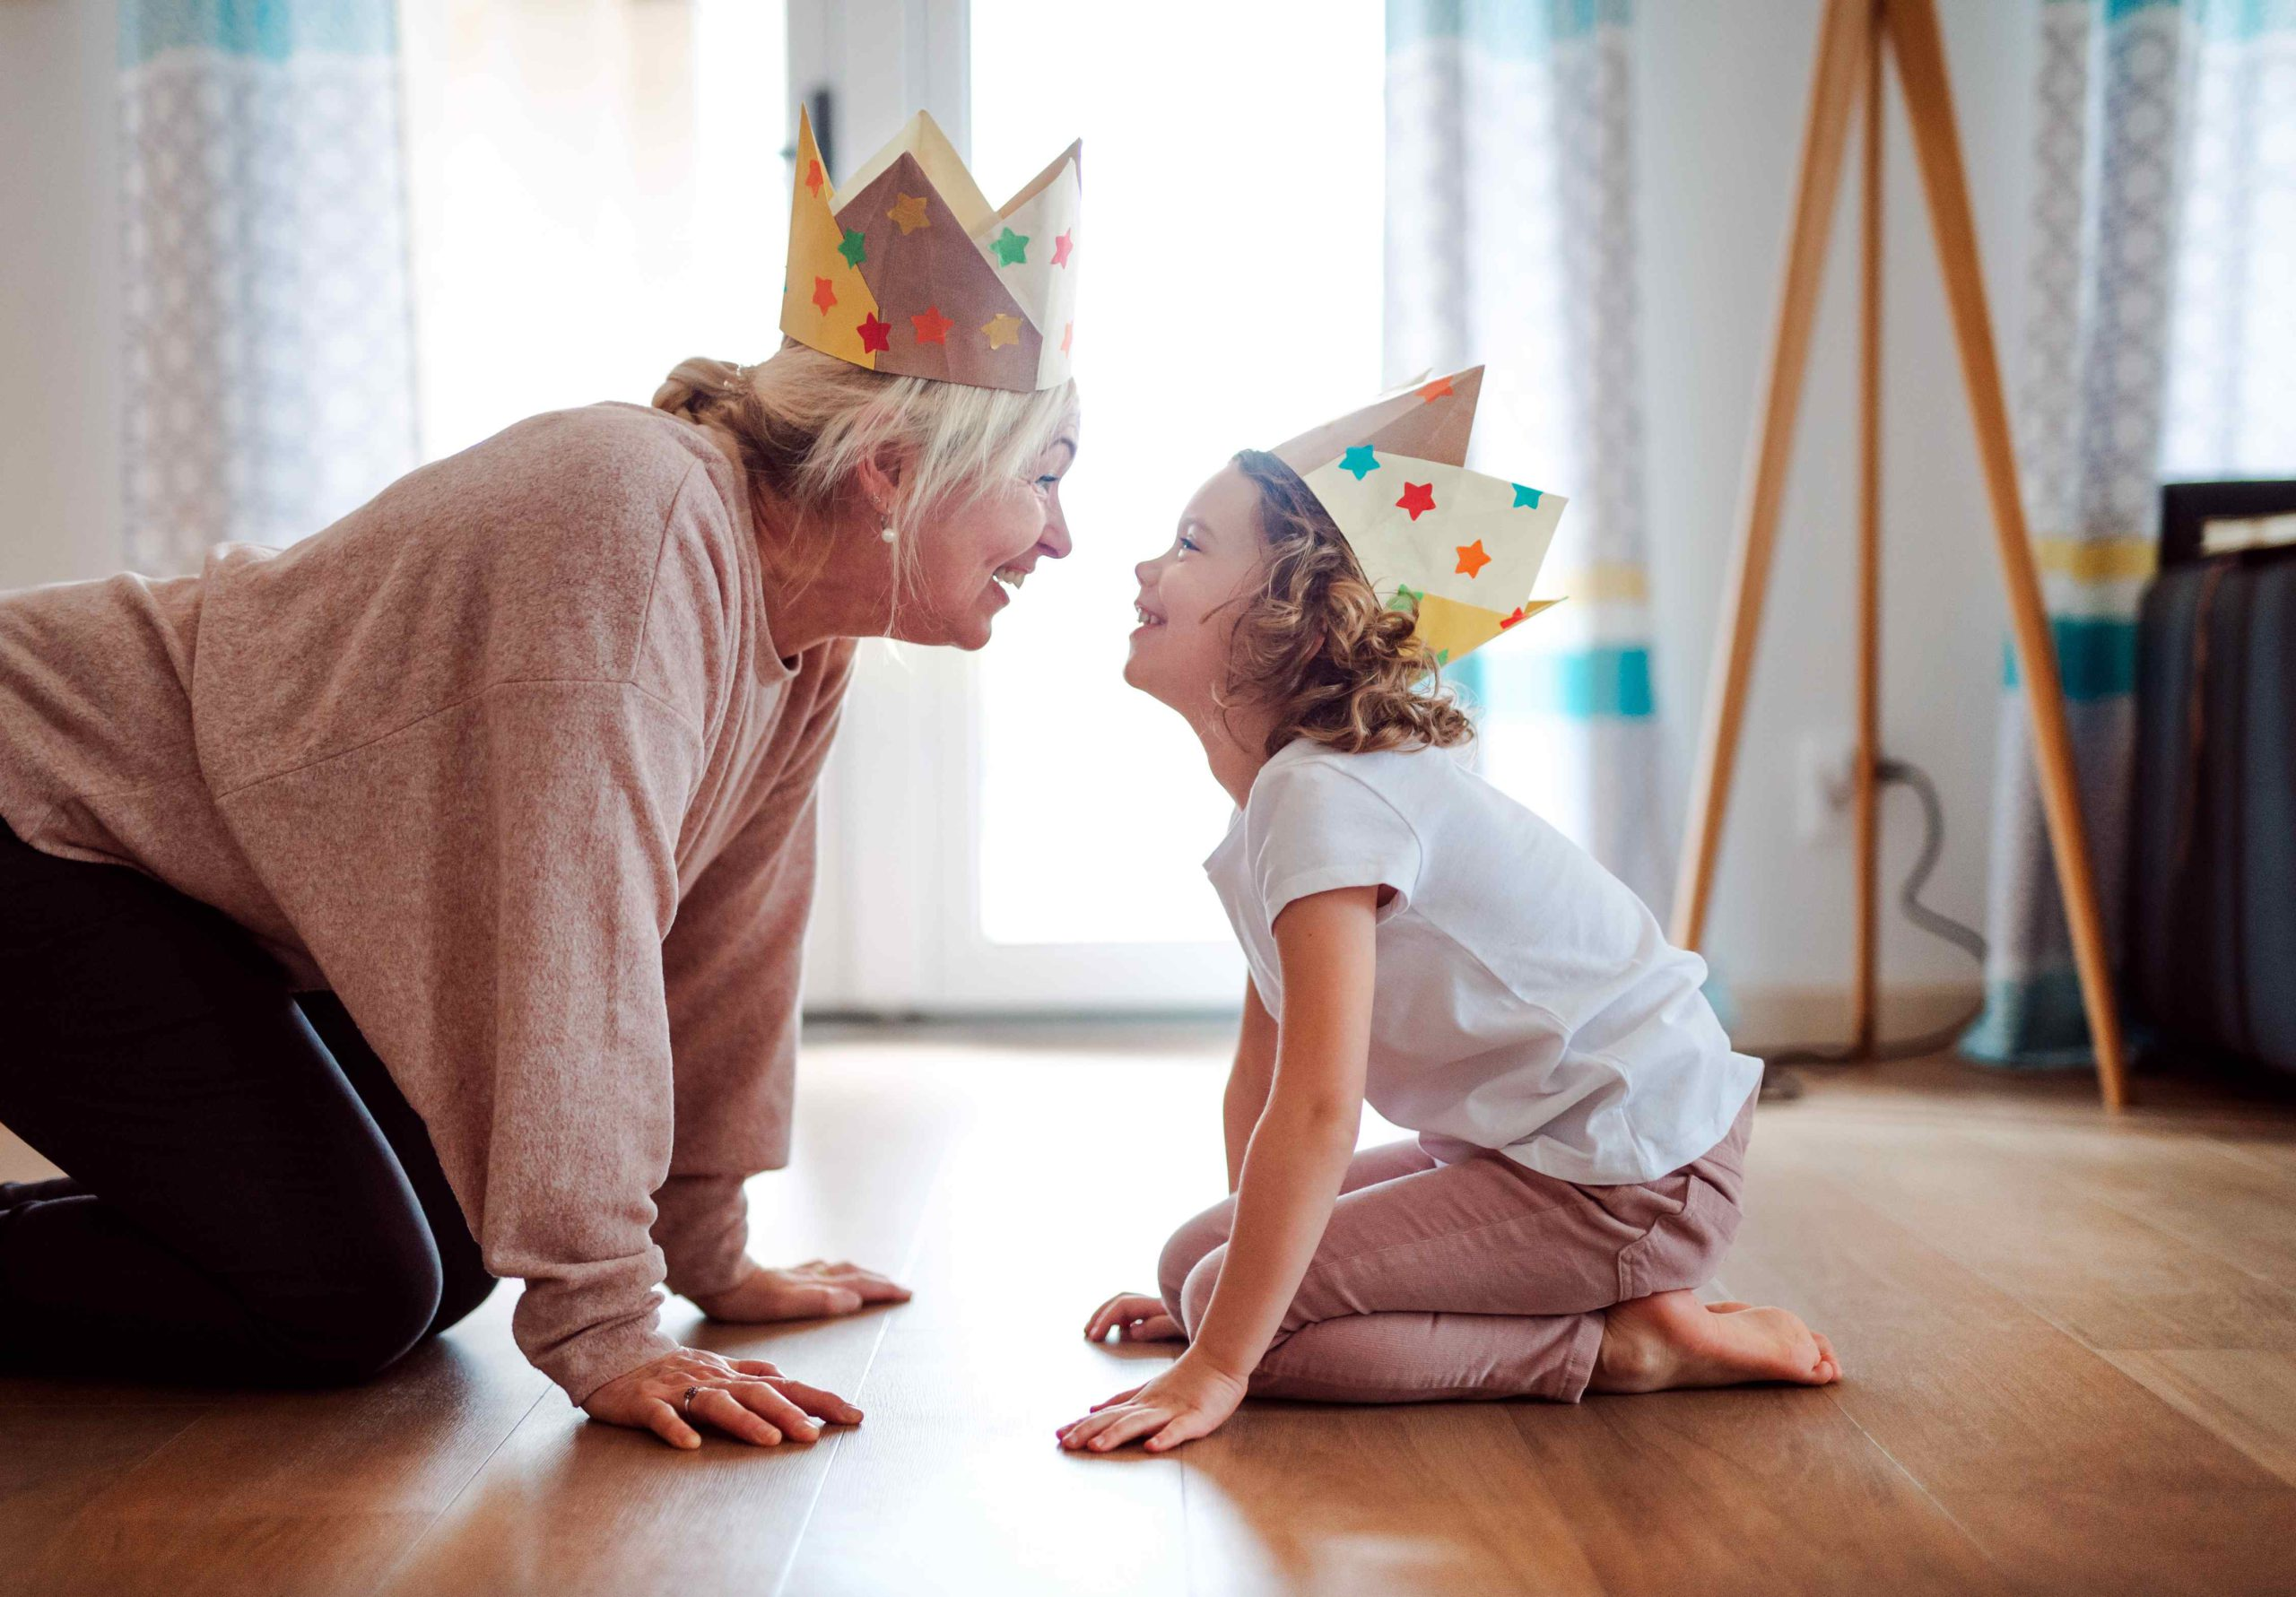 Quality of Life: What Does It Mean and Why Is It Important?